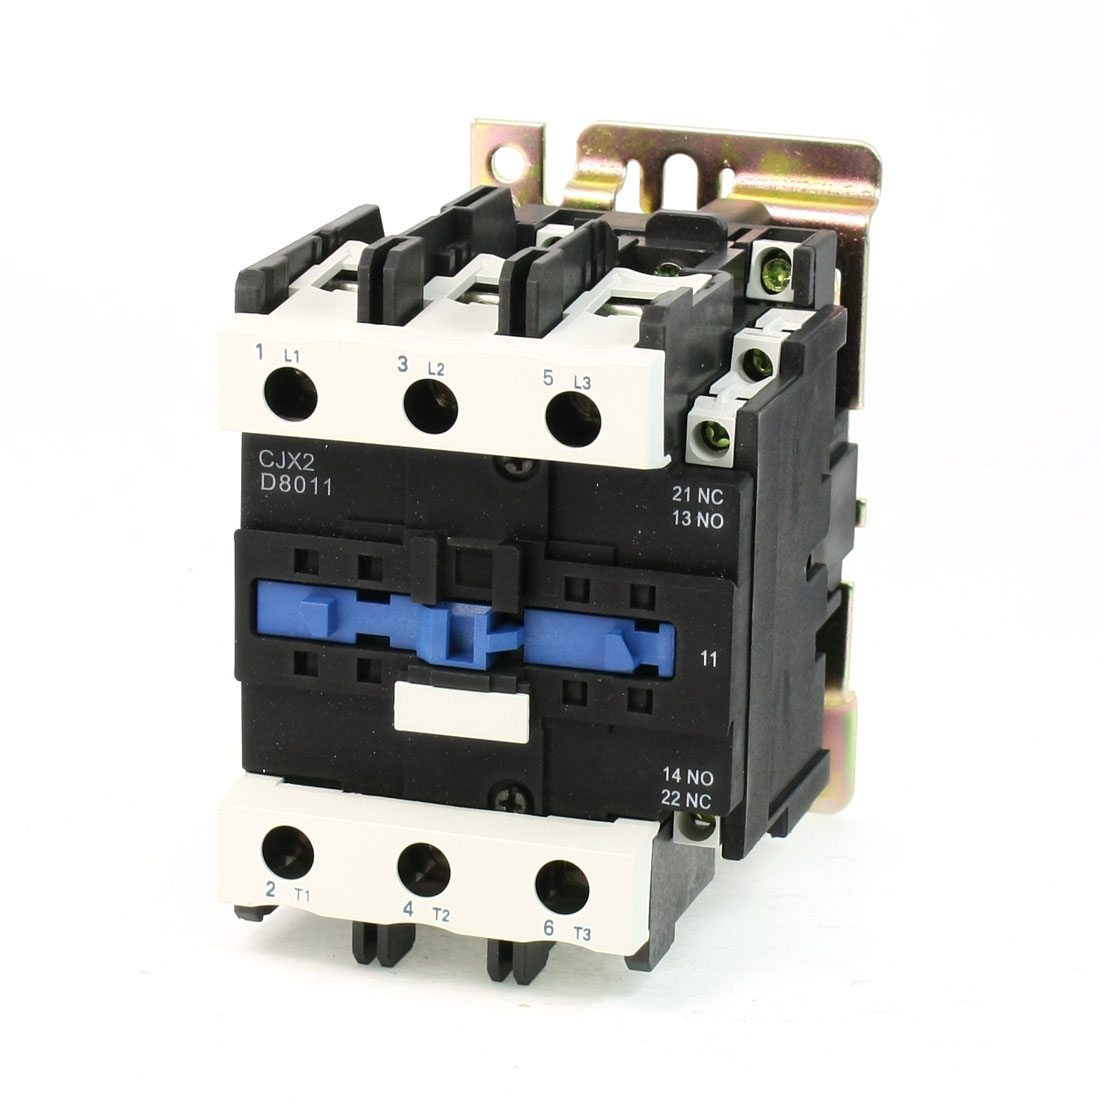 CJX2-8011 DIN Rail Mount AC Contactor 3 Pole One NO 110V Coil 125A